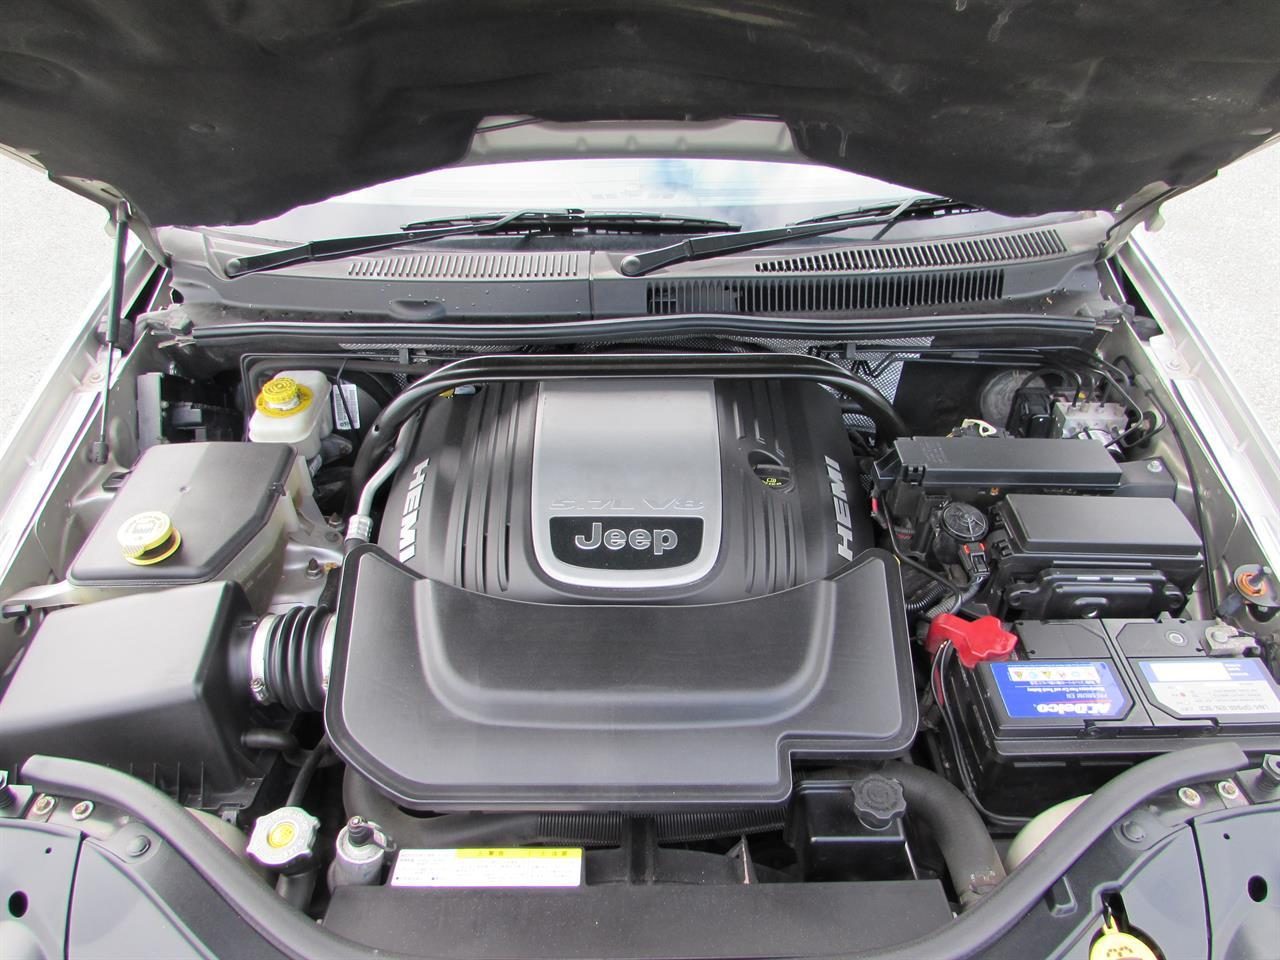 image-18, 2007 Jeep Grand Cherokee Limited 5.7L Hemi V8 at Christchurch